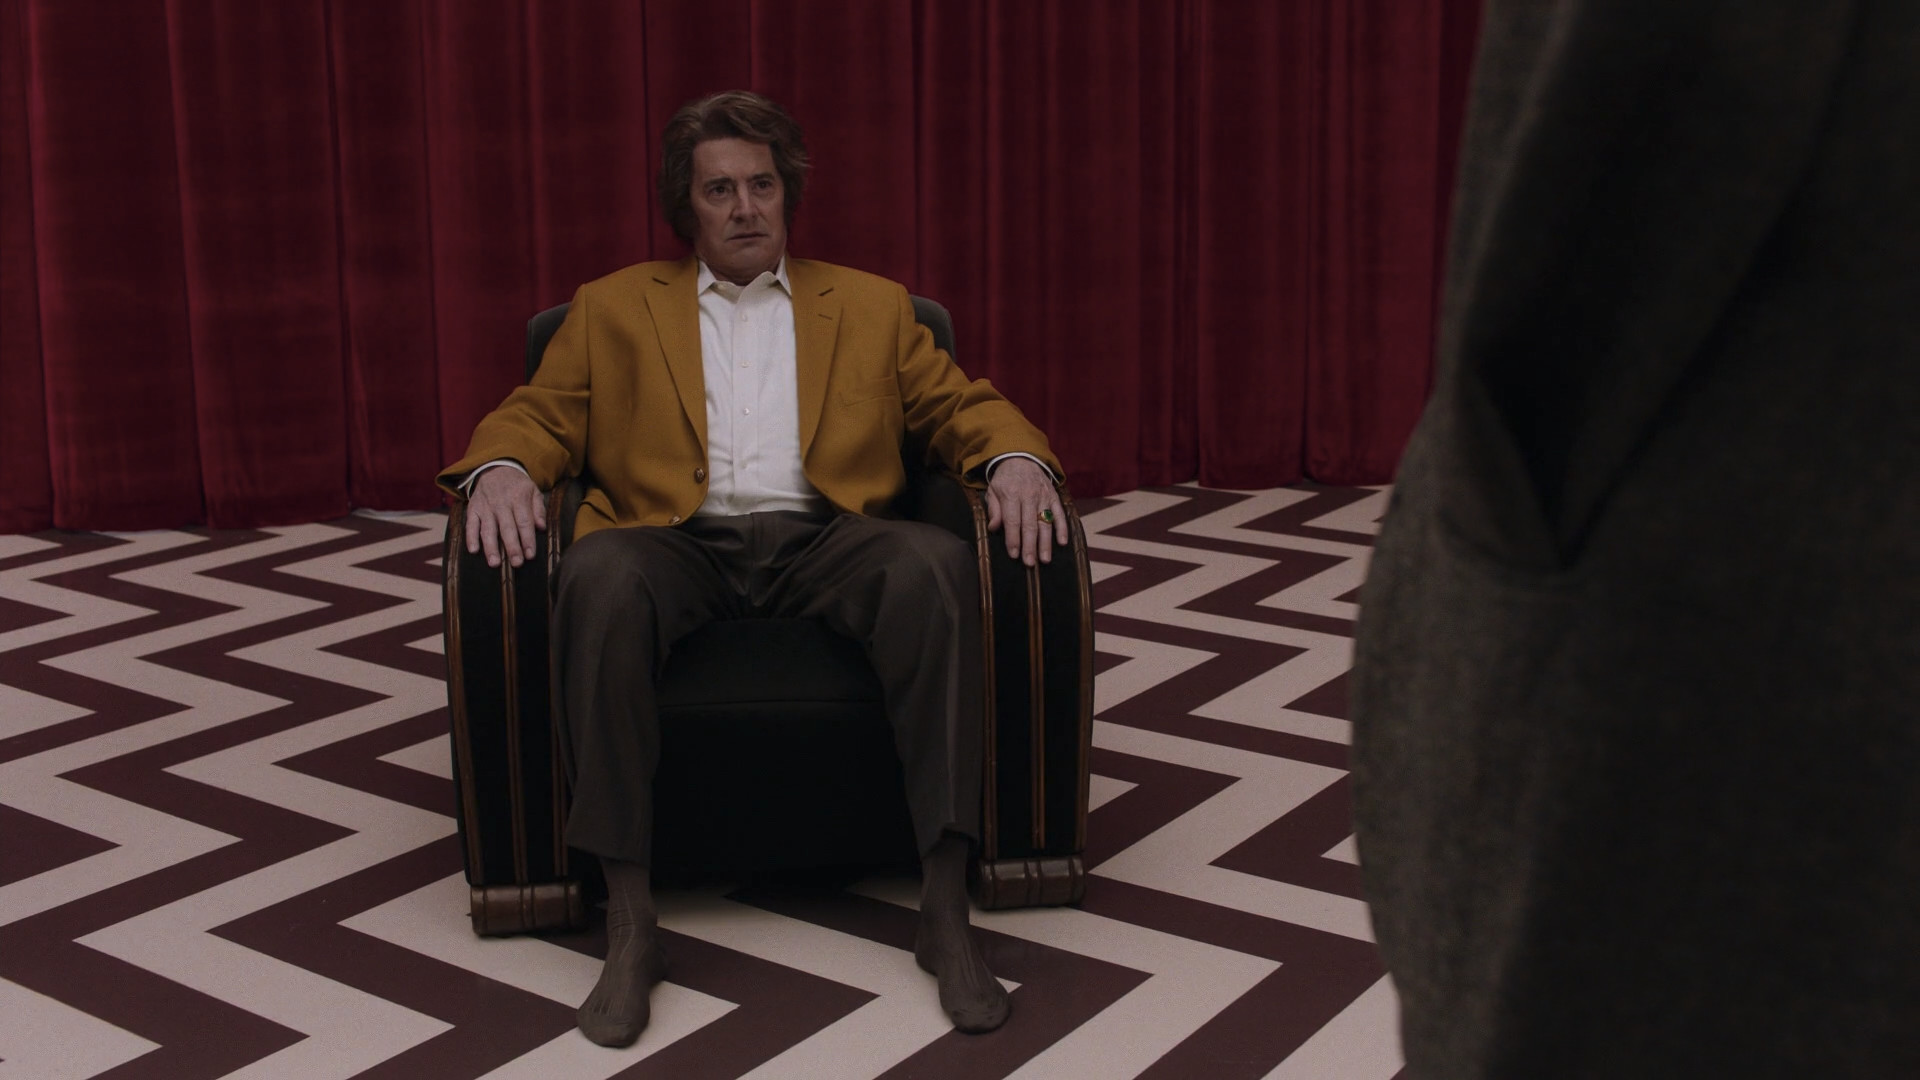 twin peaks part 3 and 4 analysis screen shot 2017 05 26 at 11 37 36